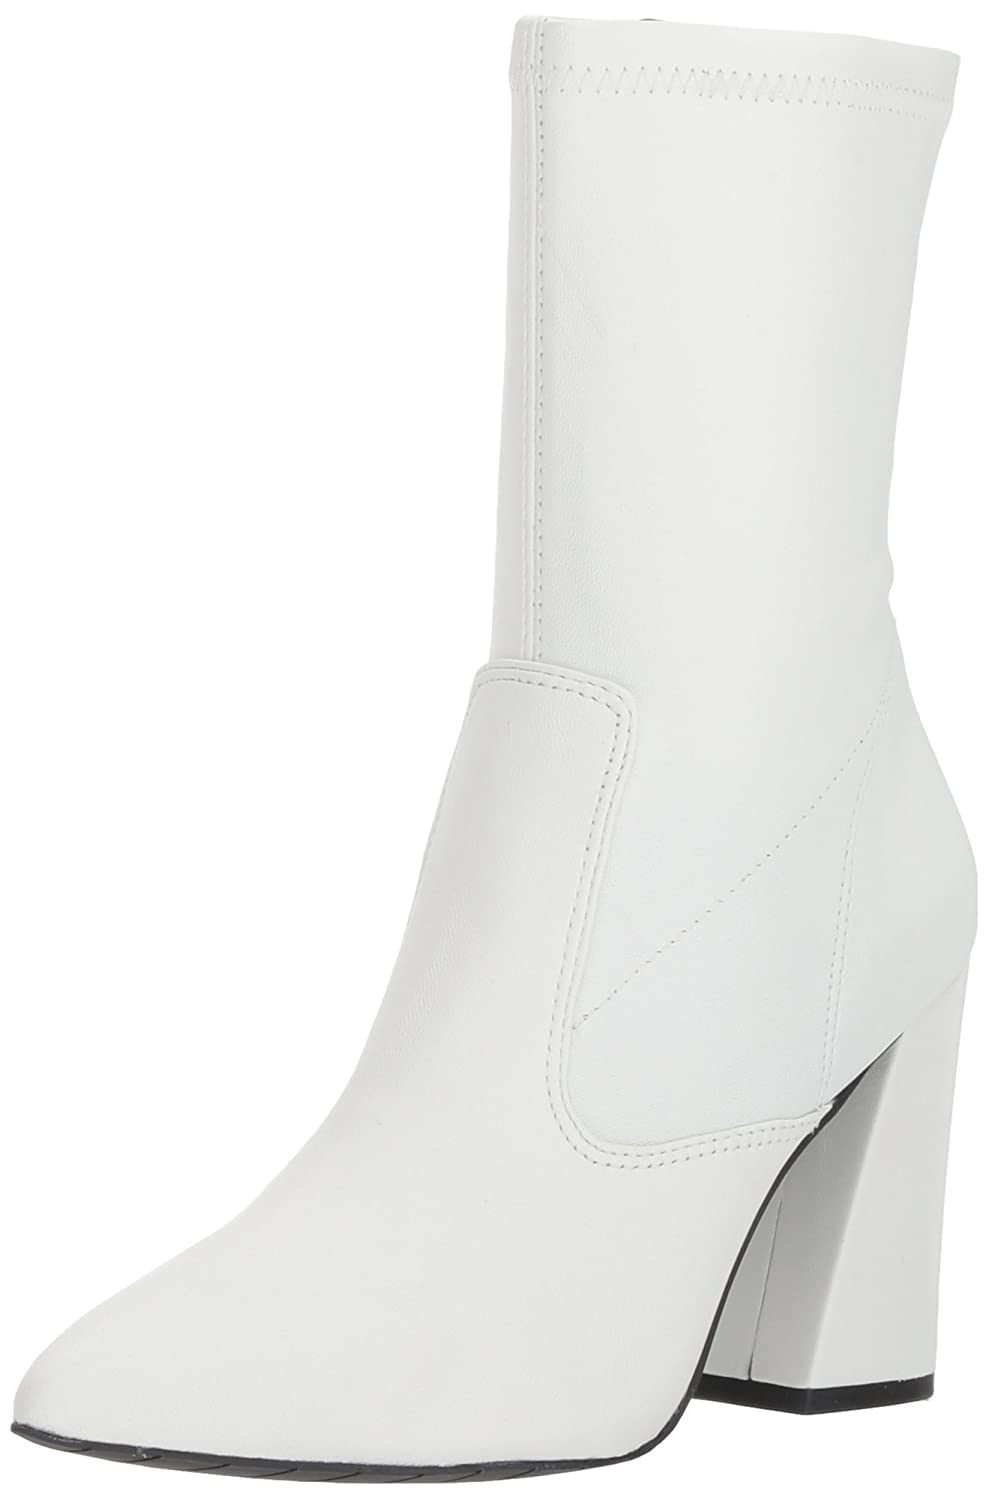 Kenneth Cole New York Women's Galla Pointed Toe Bootie with Flared Heel Stretch Shaft Fashion Boot B0754L415Z 10 B(M) US|White